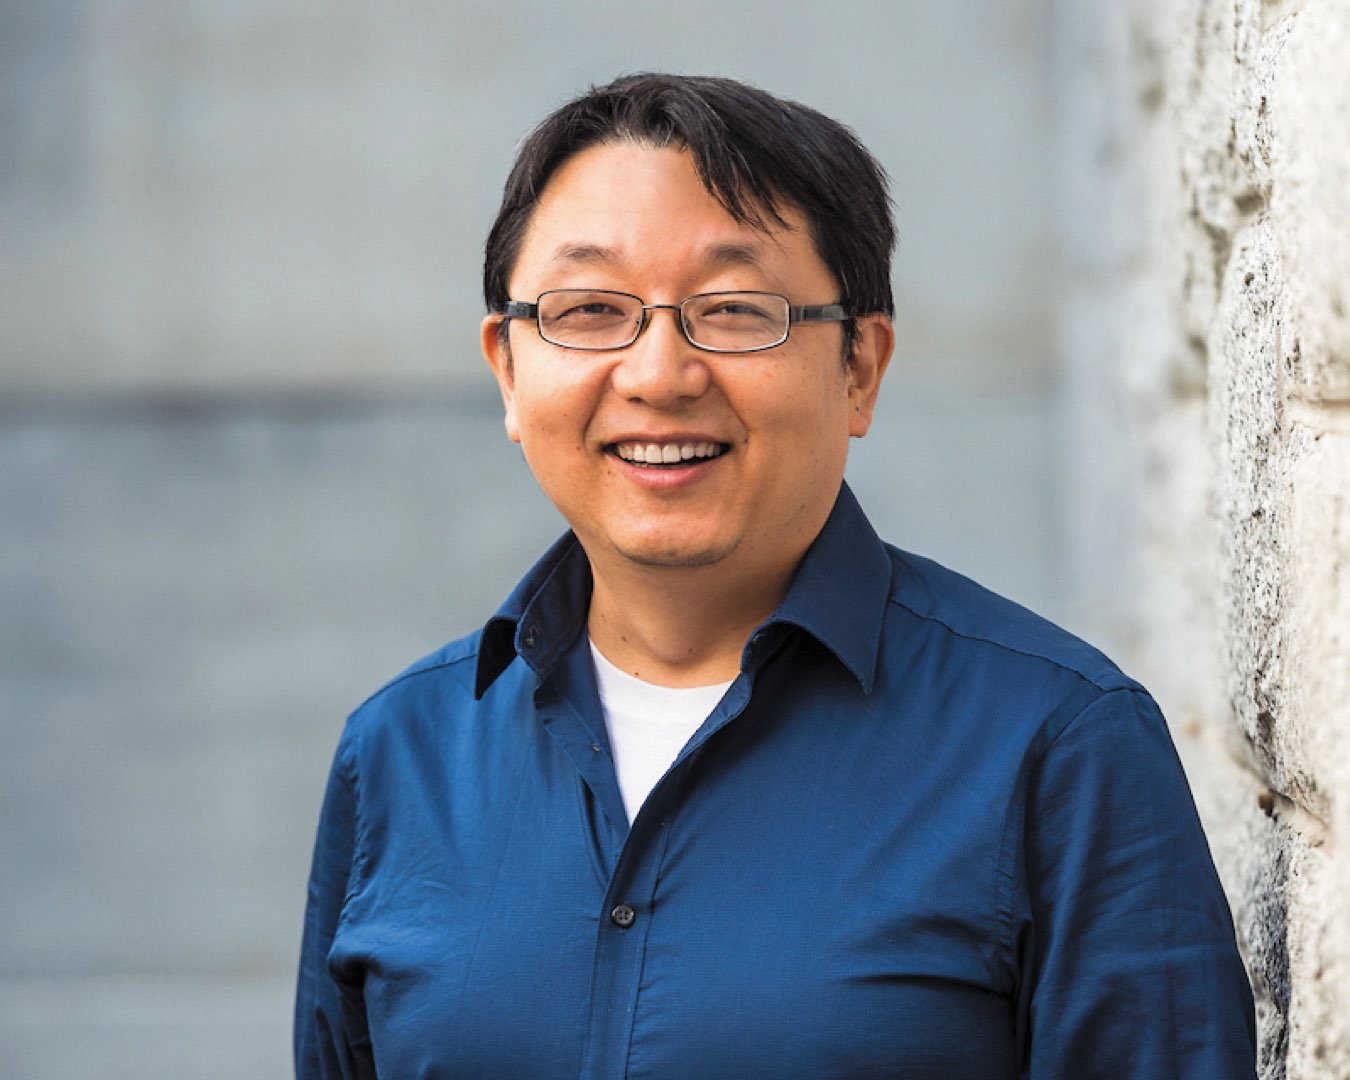 Headshot of Dr. Qianhong Wu wearing glasses and a blue dress shirt unbuttoned, smiling